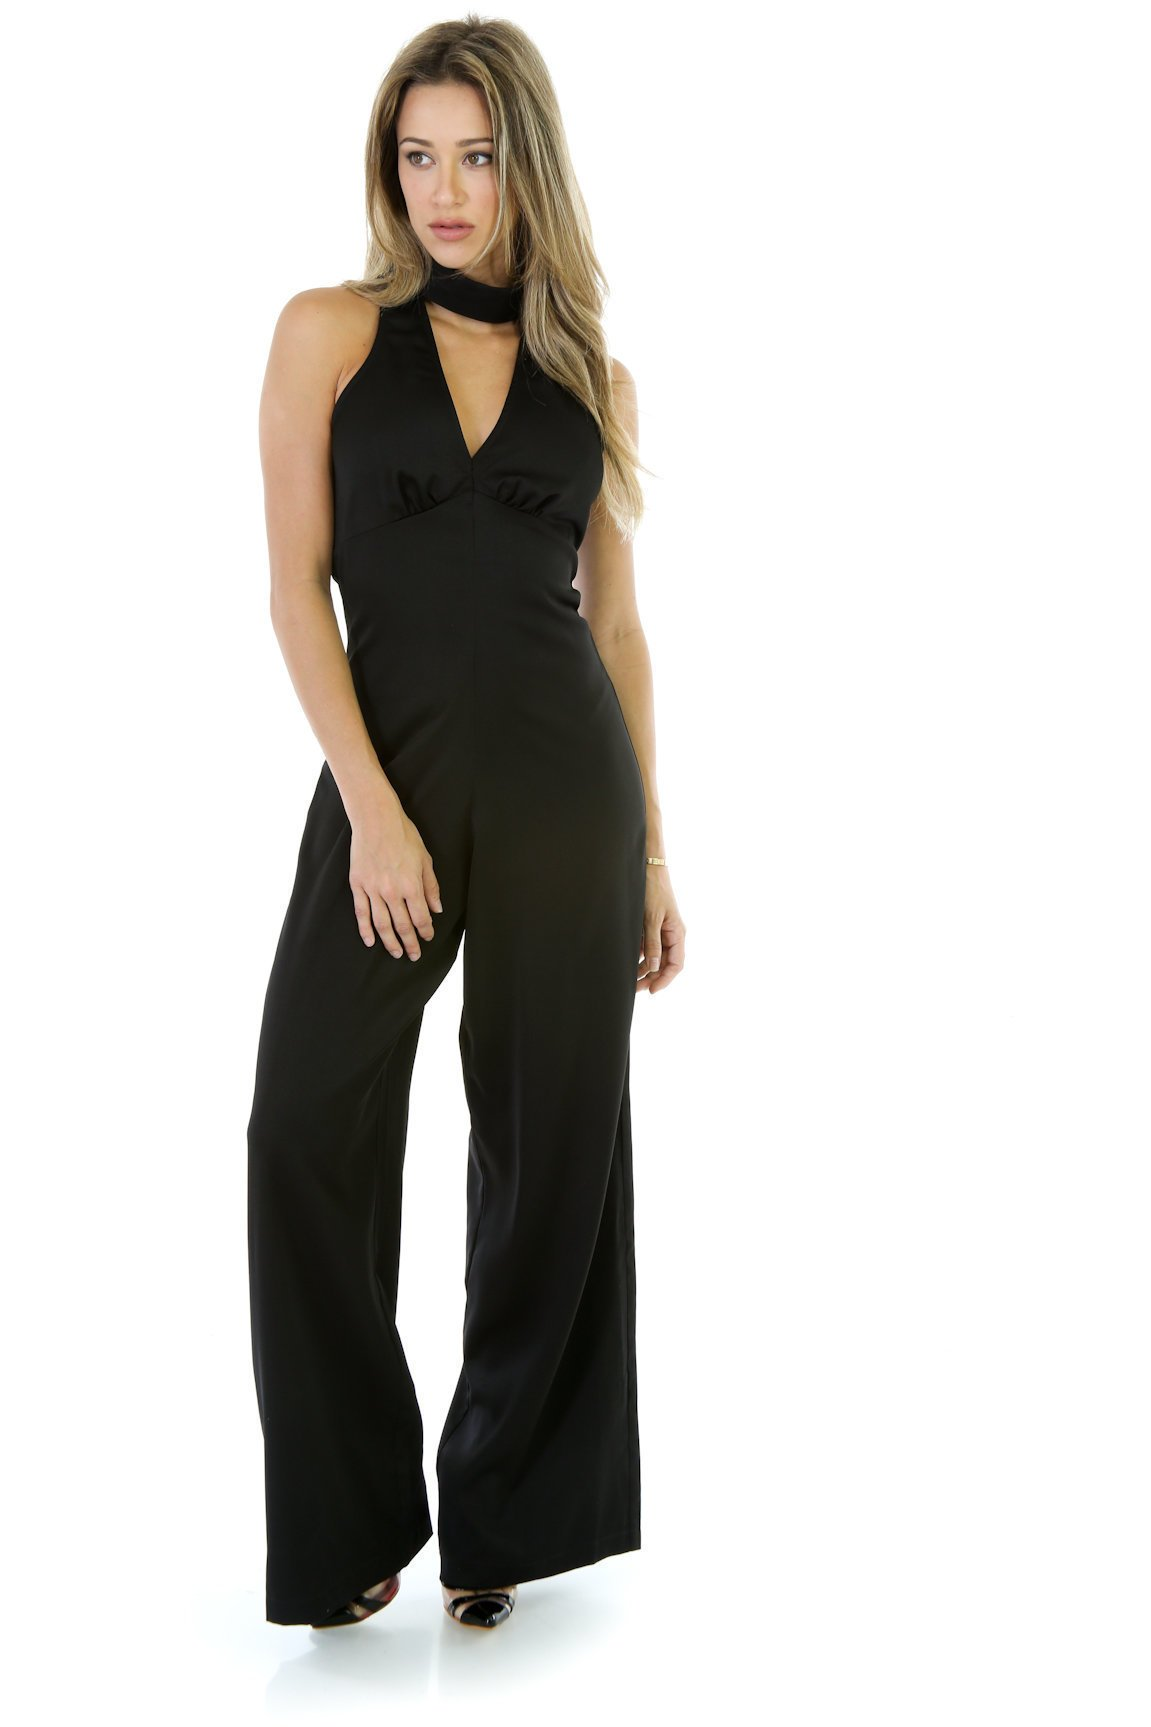 Sleeked Down Jumpsuit